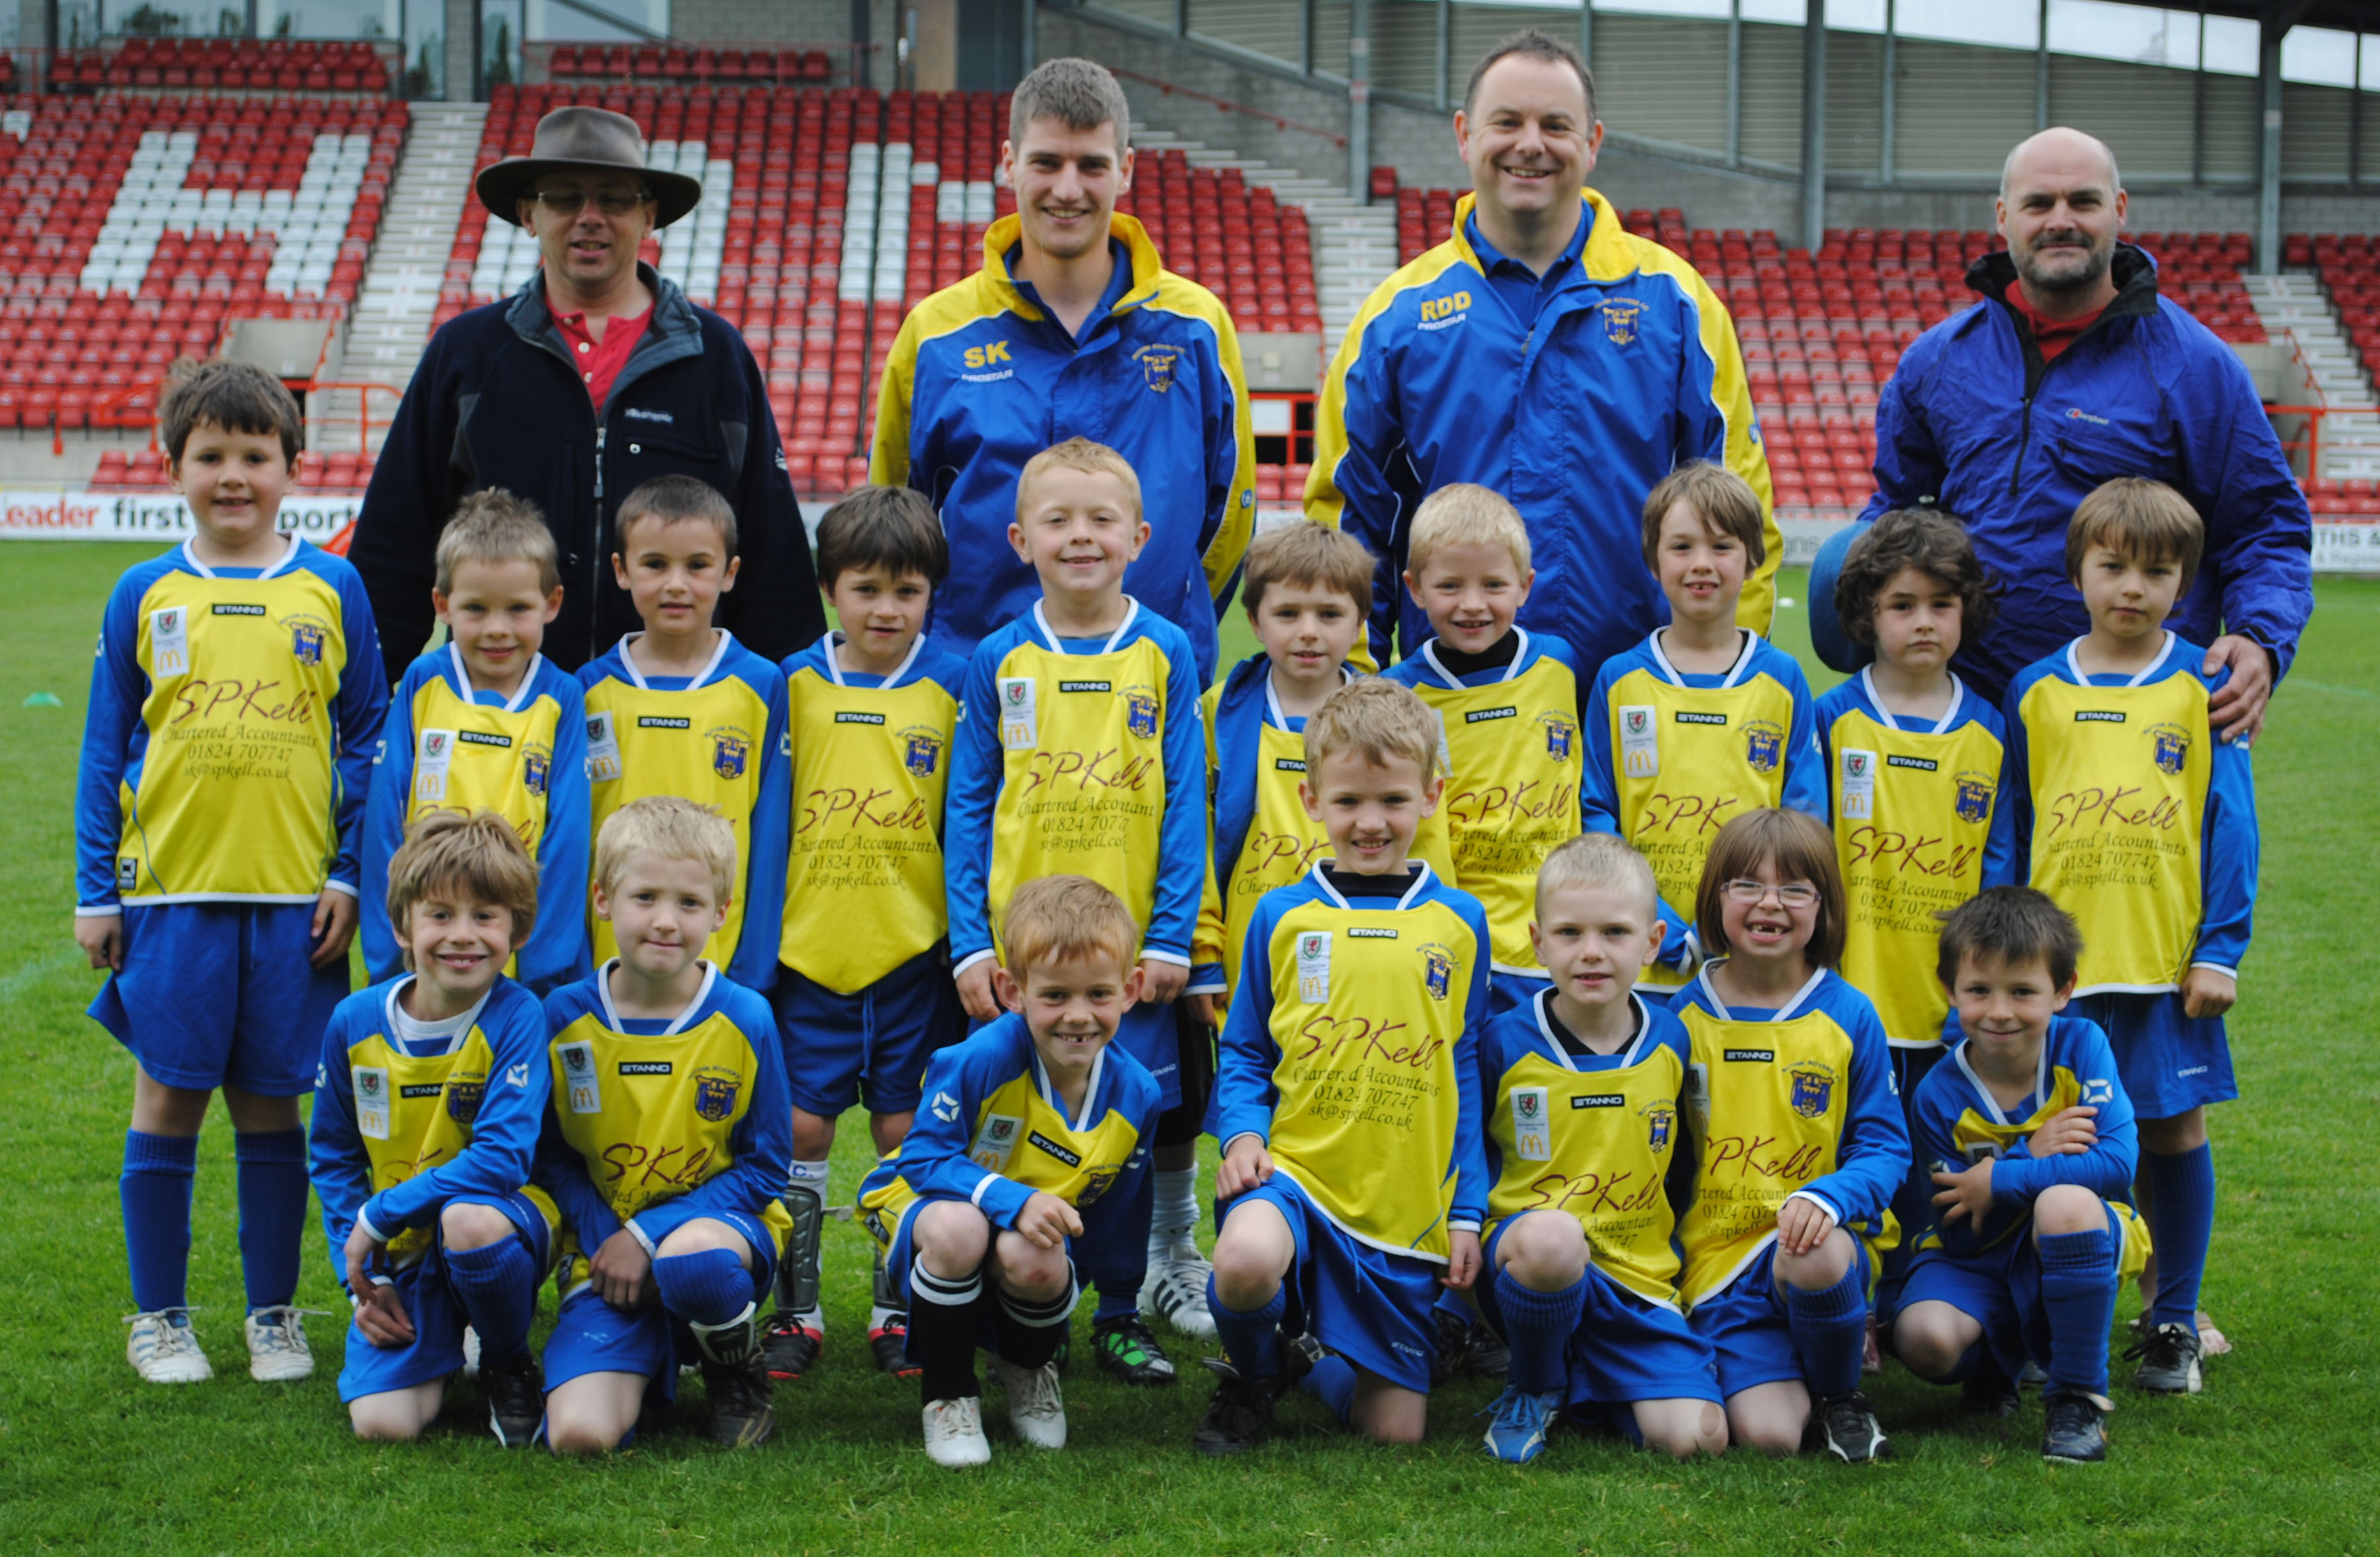 Ruthin Rovers Under 7's